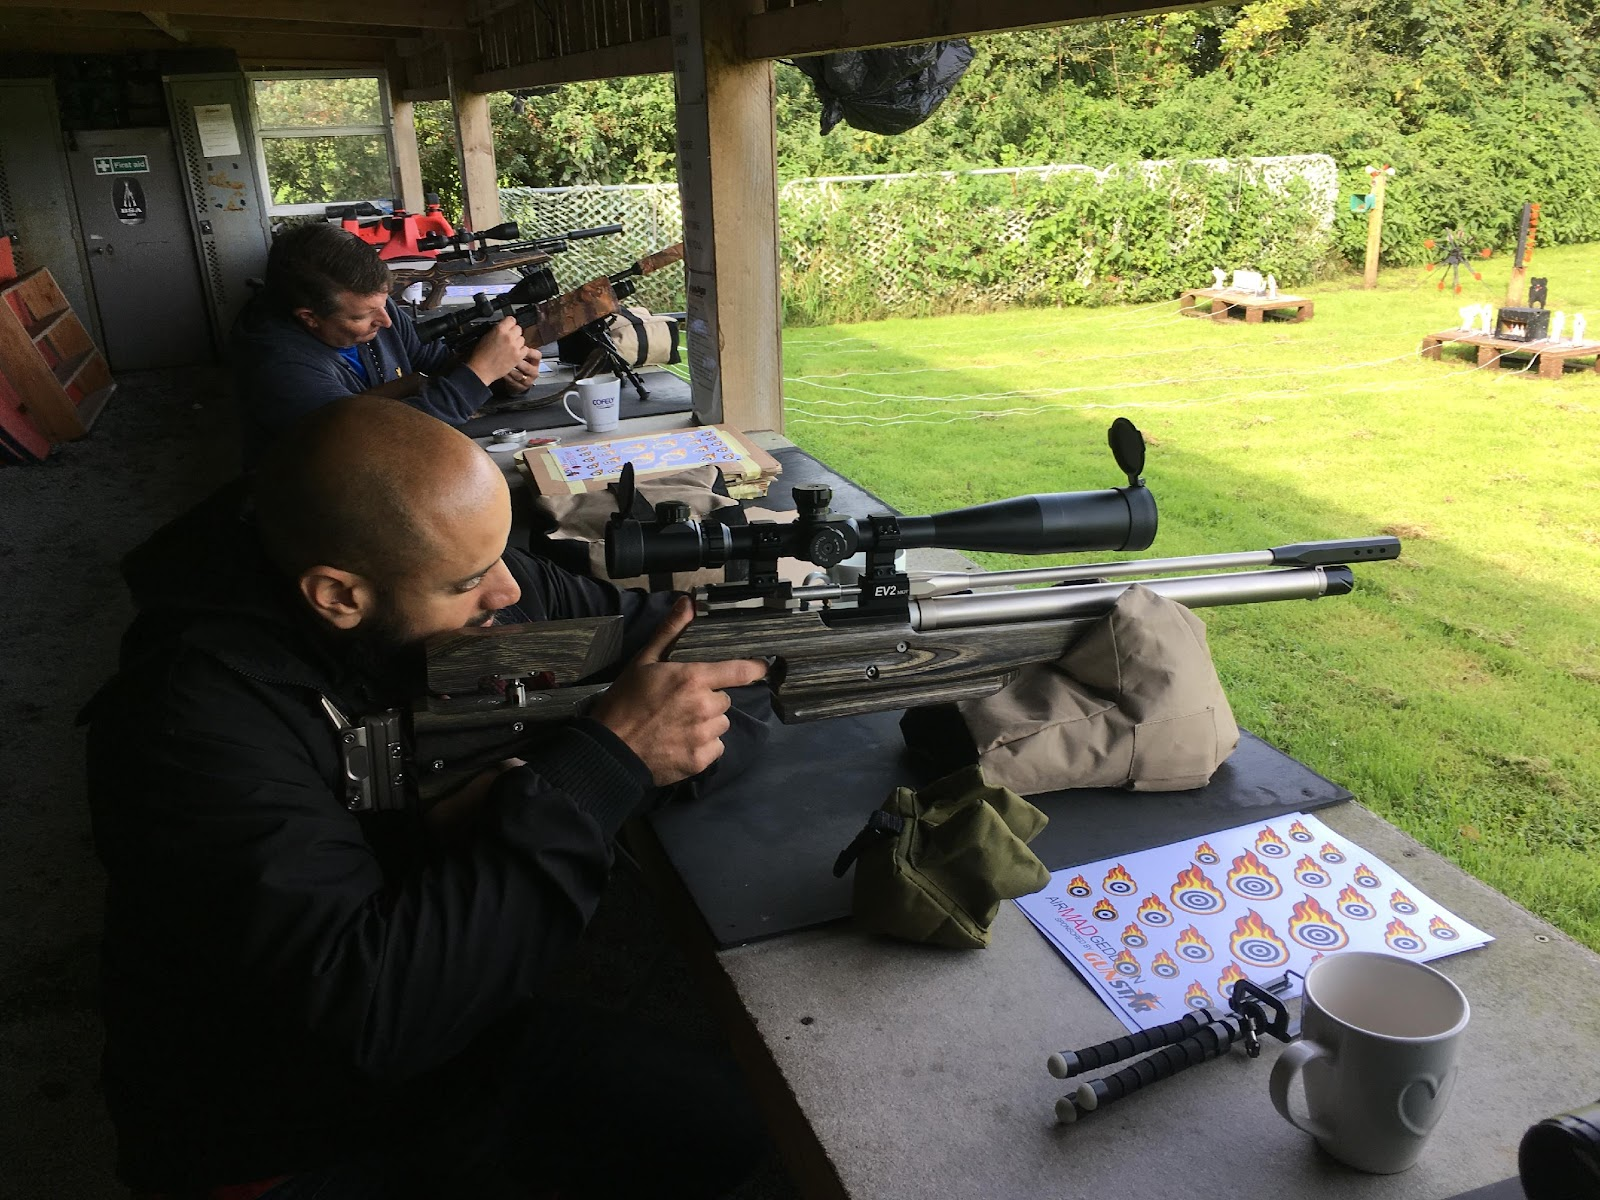 contestants shooting the benchrest targets